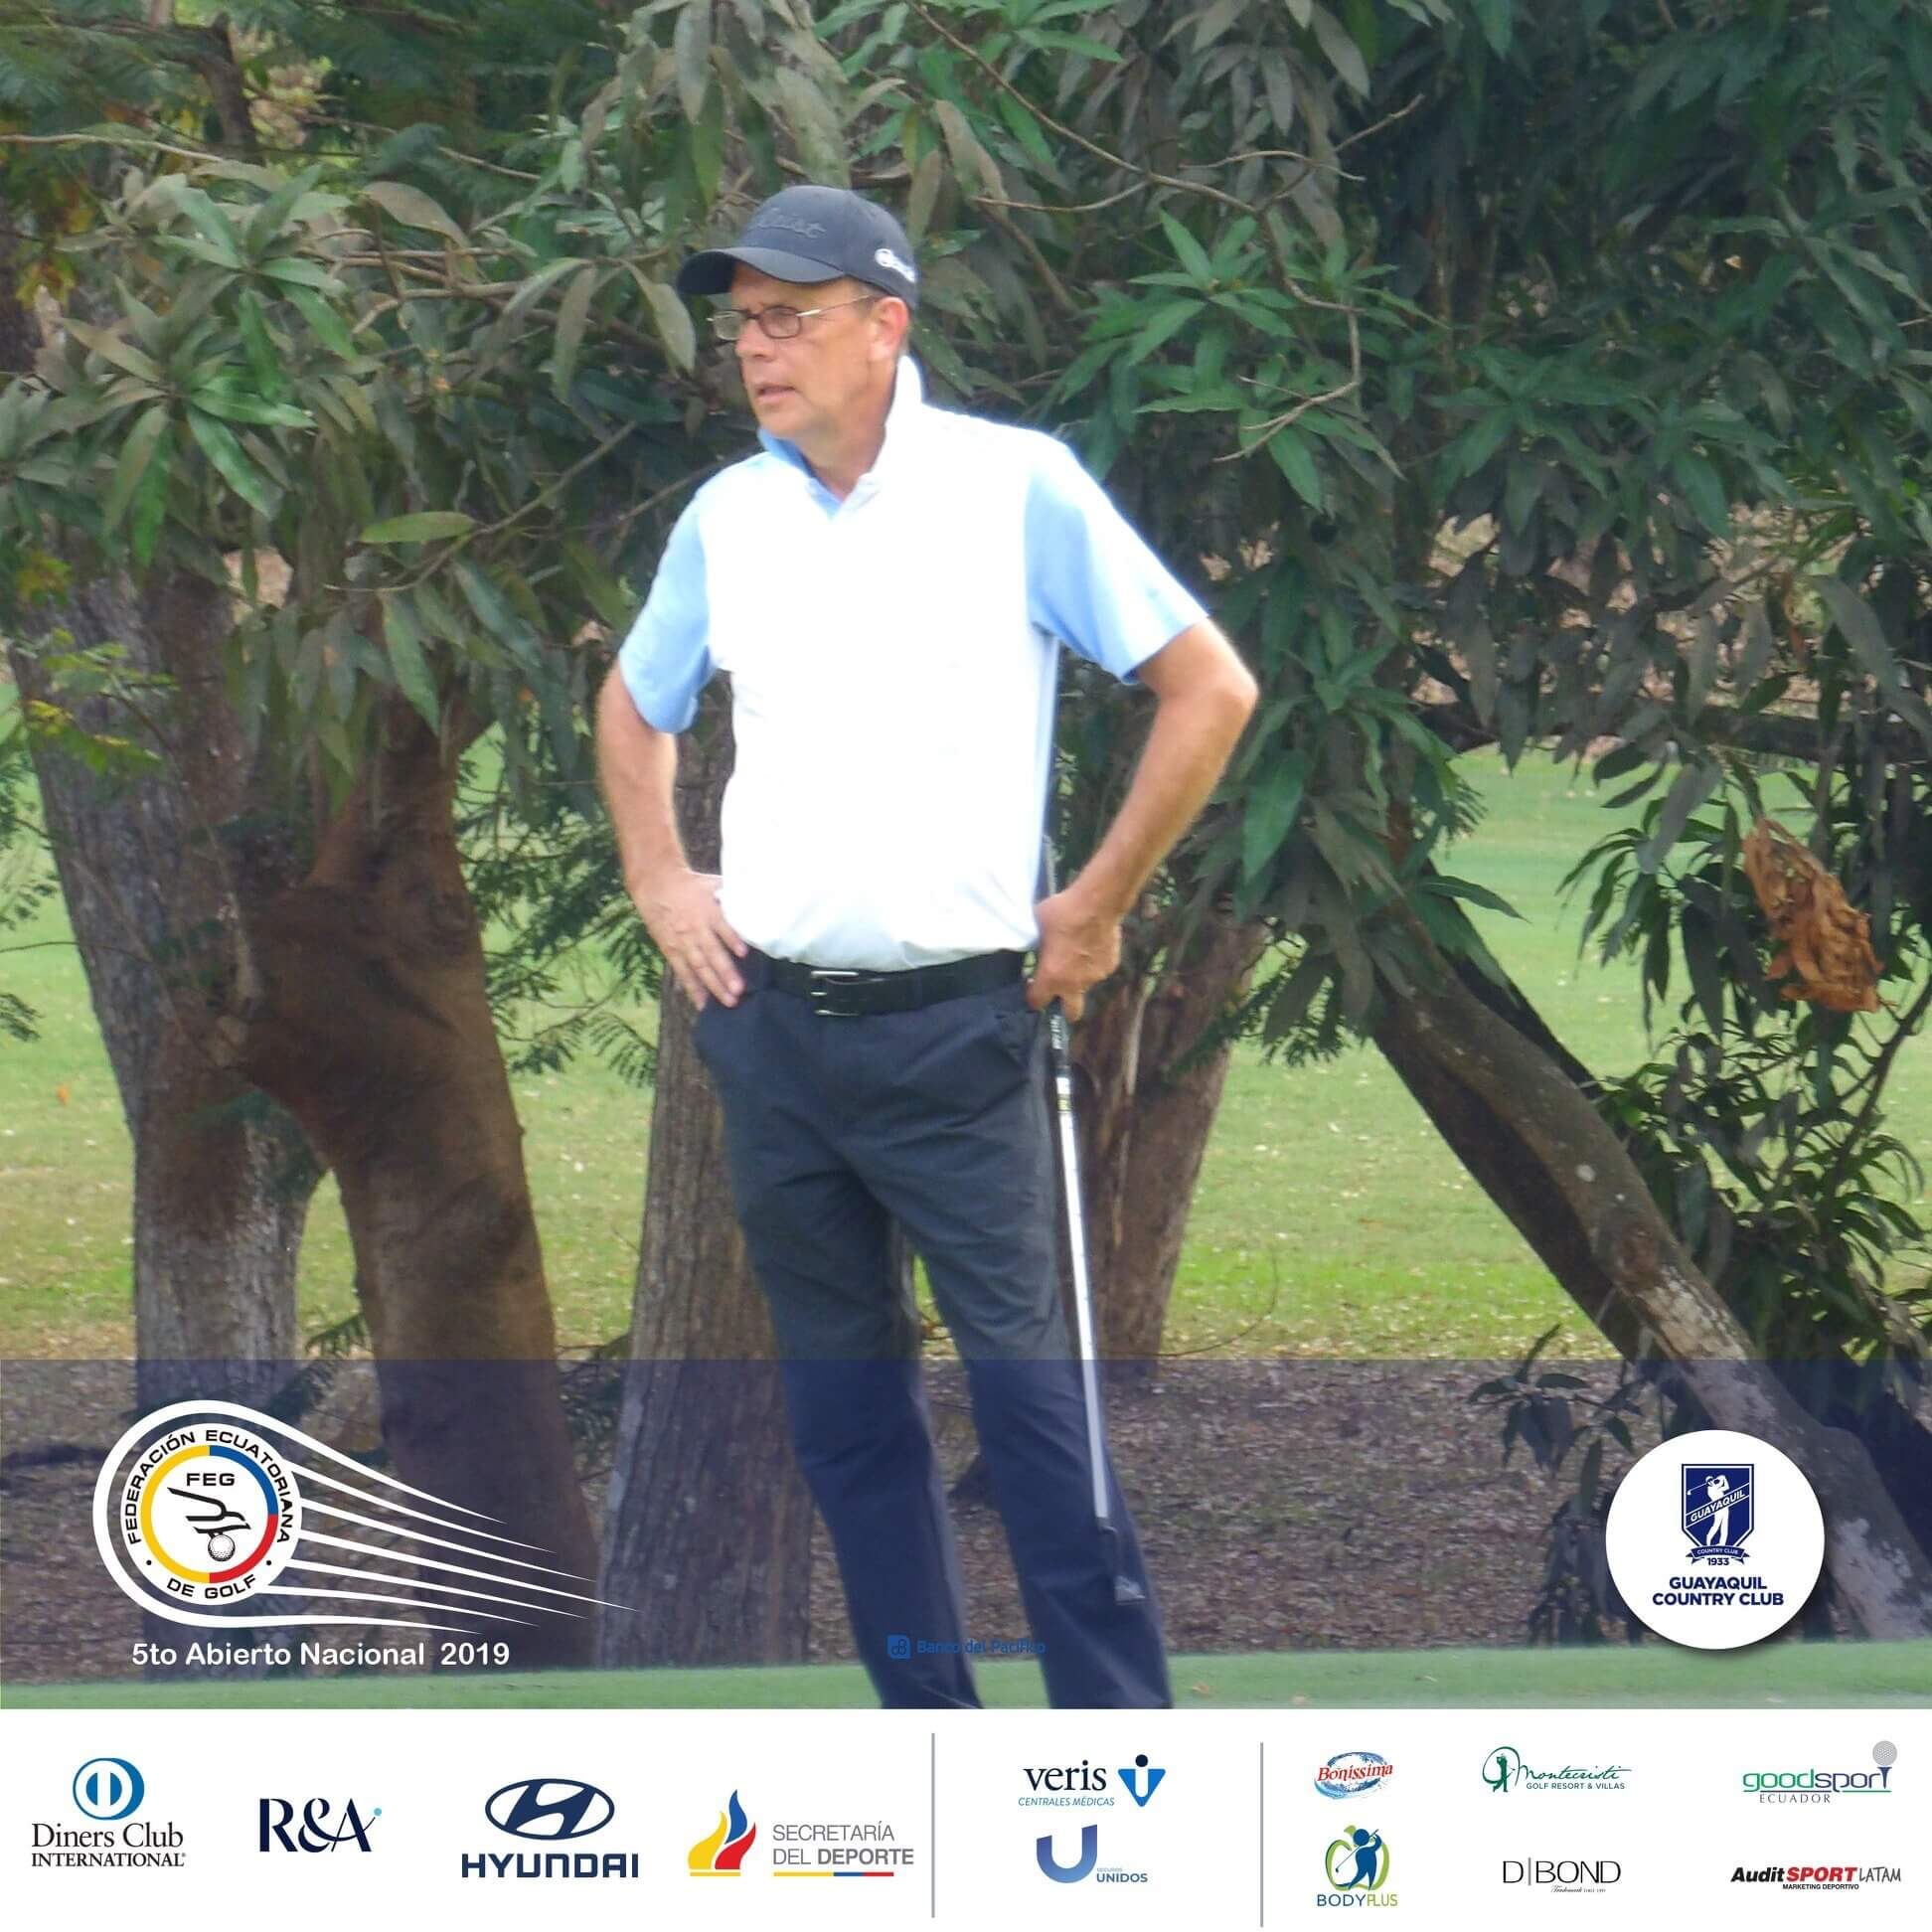 Eco. Lassi Pensikkala FEG Ecuador Open Golf in Guayaquil Country Club  Learn to play golf